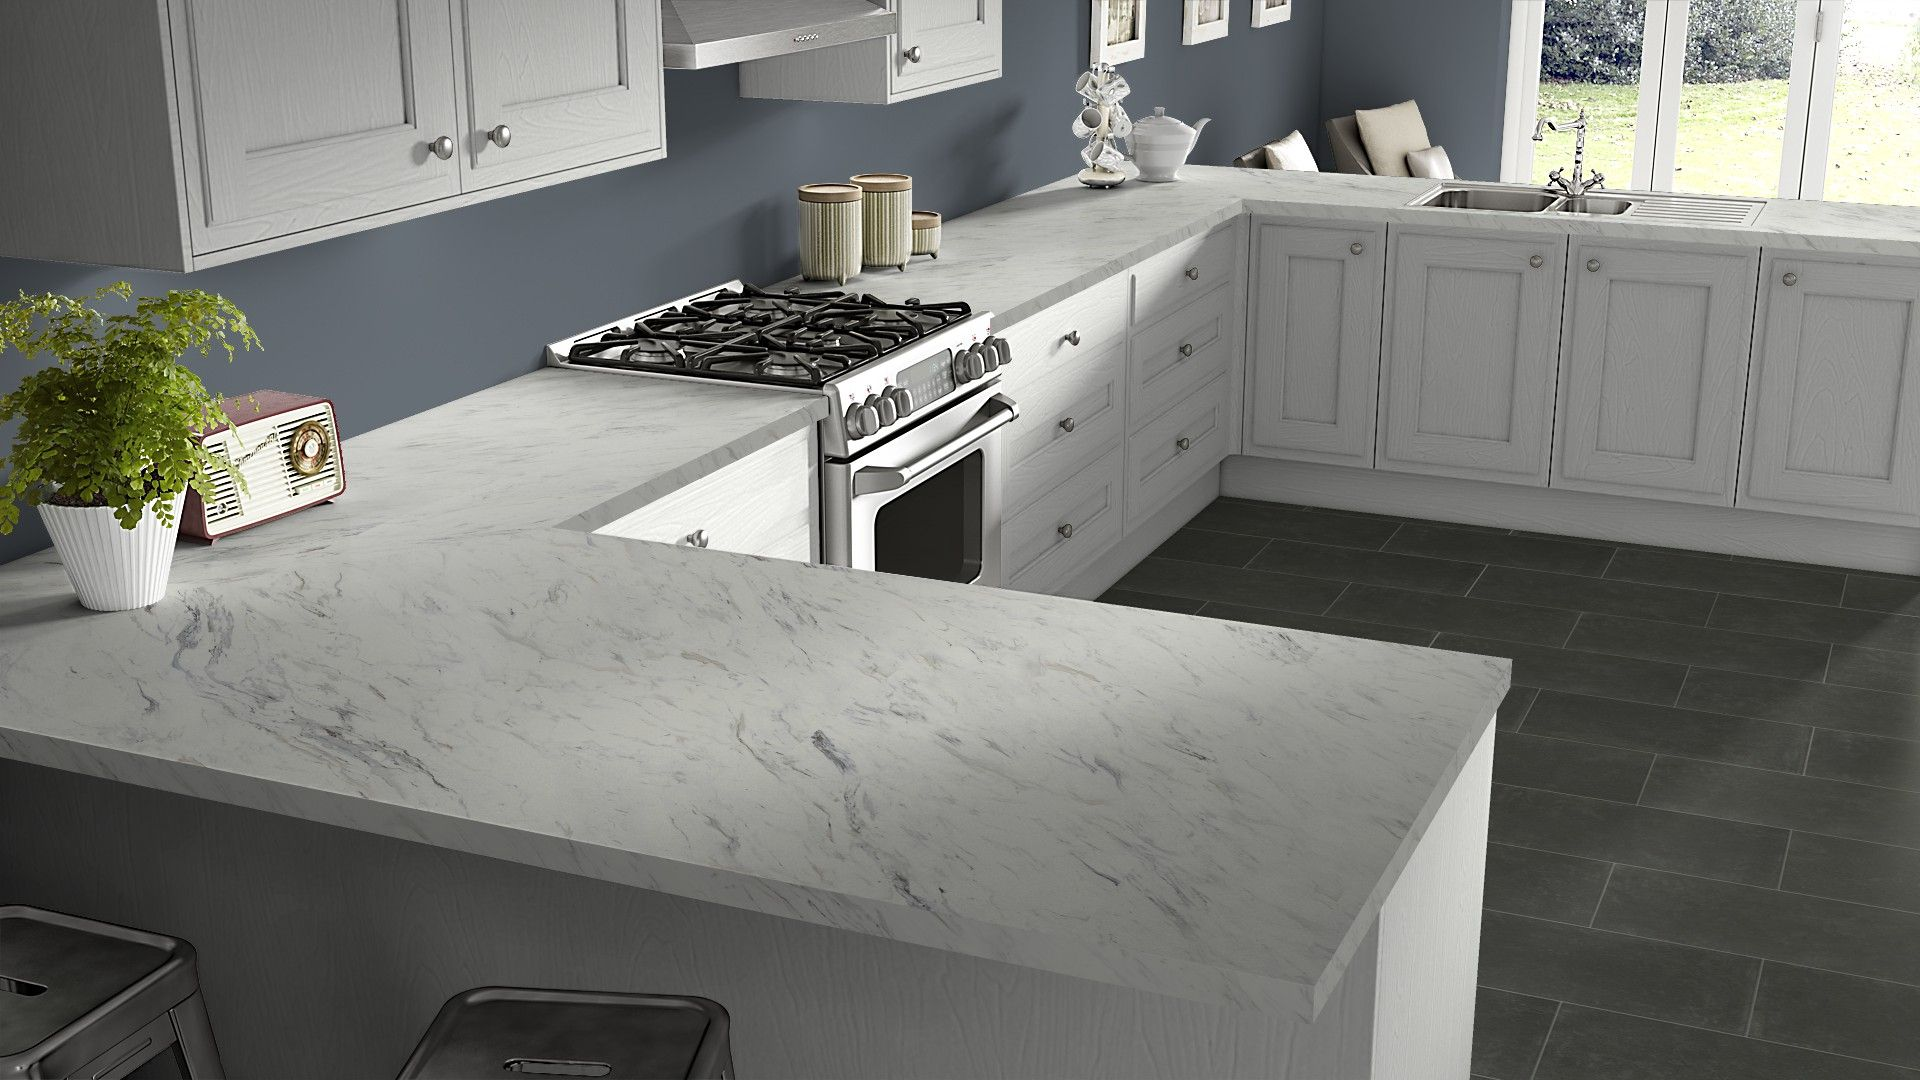 Calcutta Marble Laminate Countertop Calcutta Marble Laminate Get Inspired For Your Kitchen